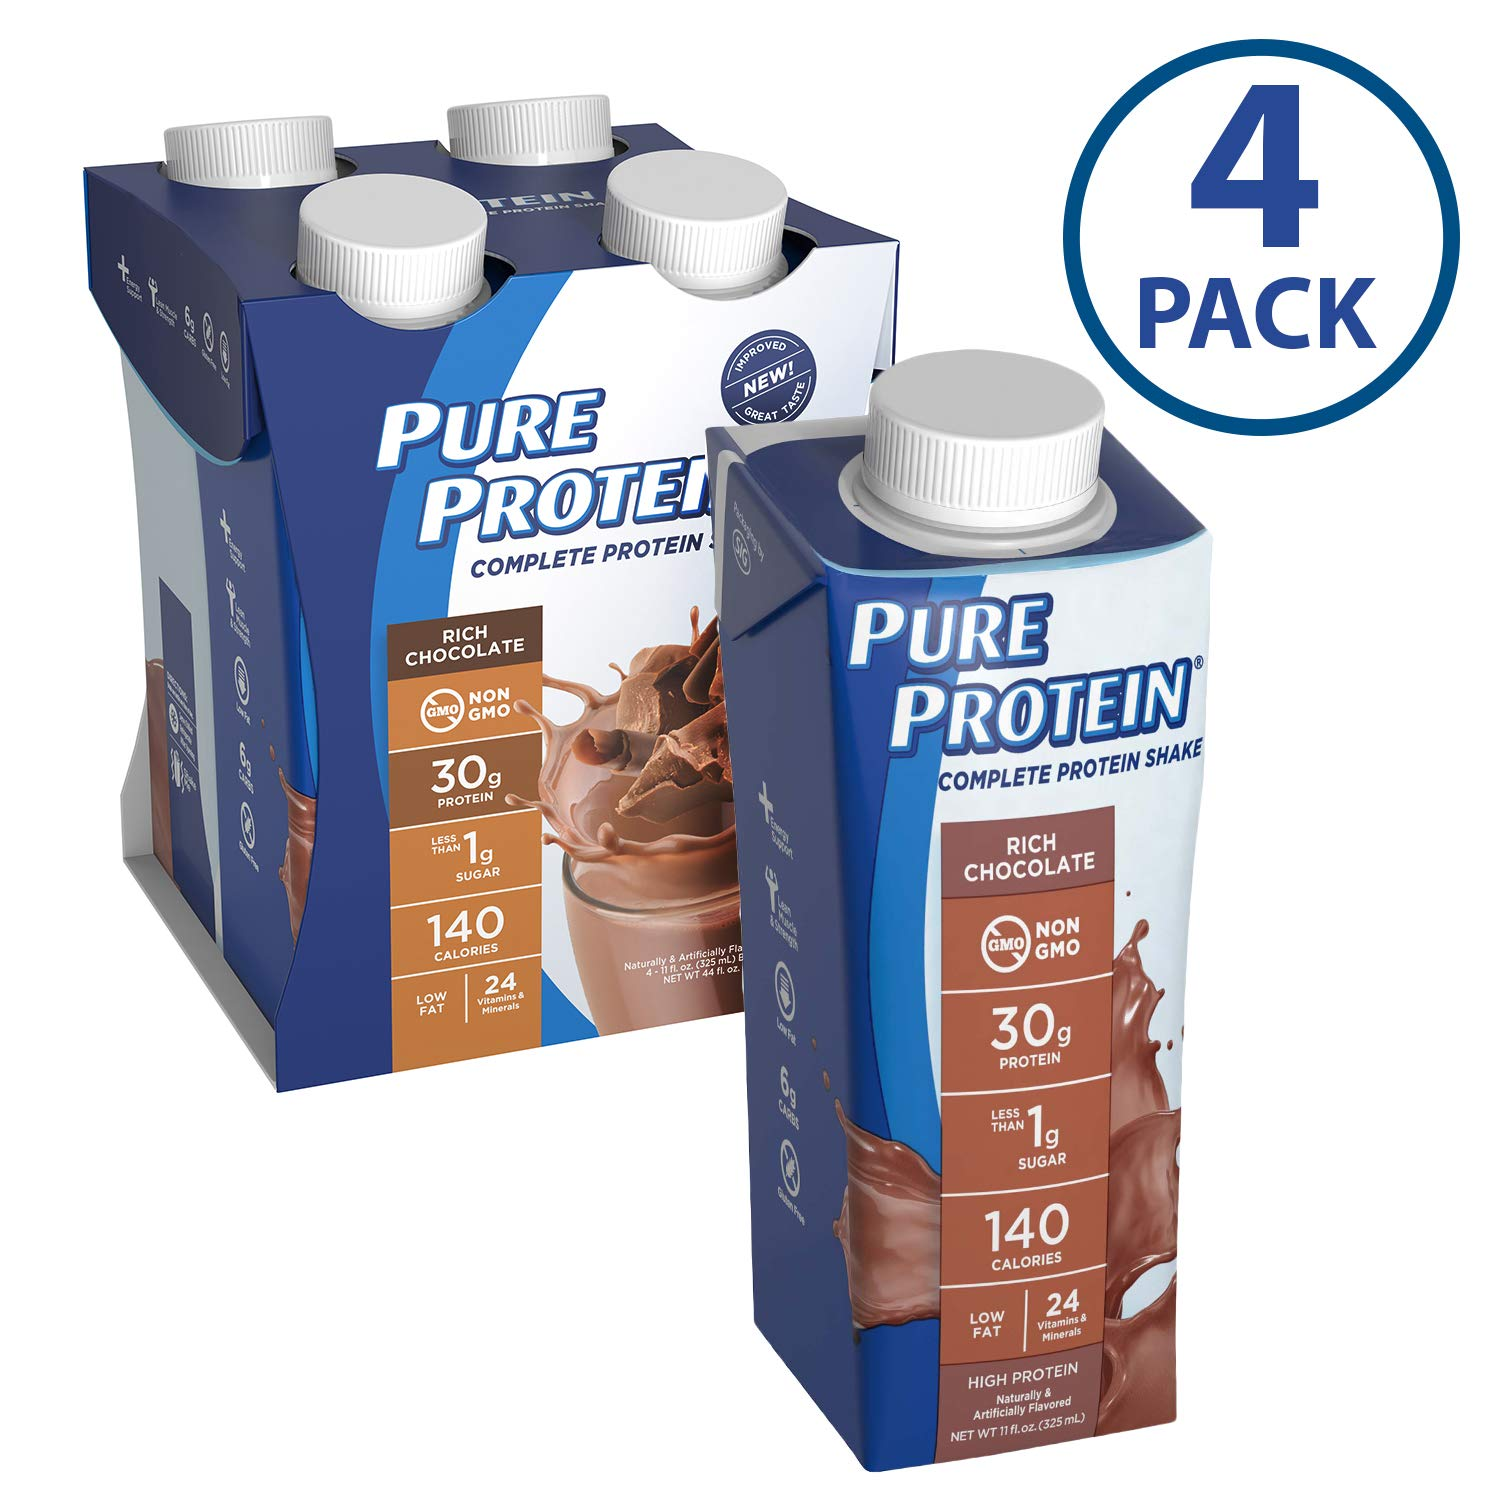 Pure Protein Complete Ready to Drink Shakes, High Protein Rich Chocolate, 11oz, 4 Count by Pure Protein